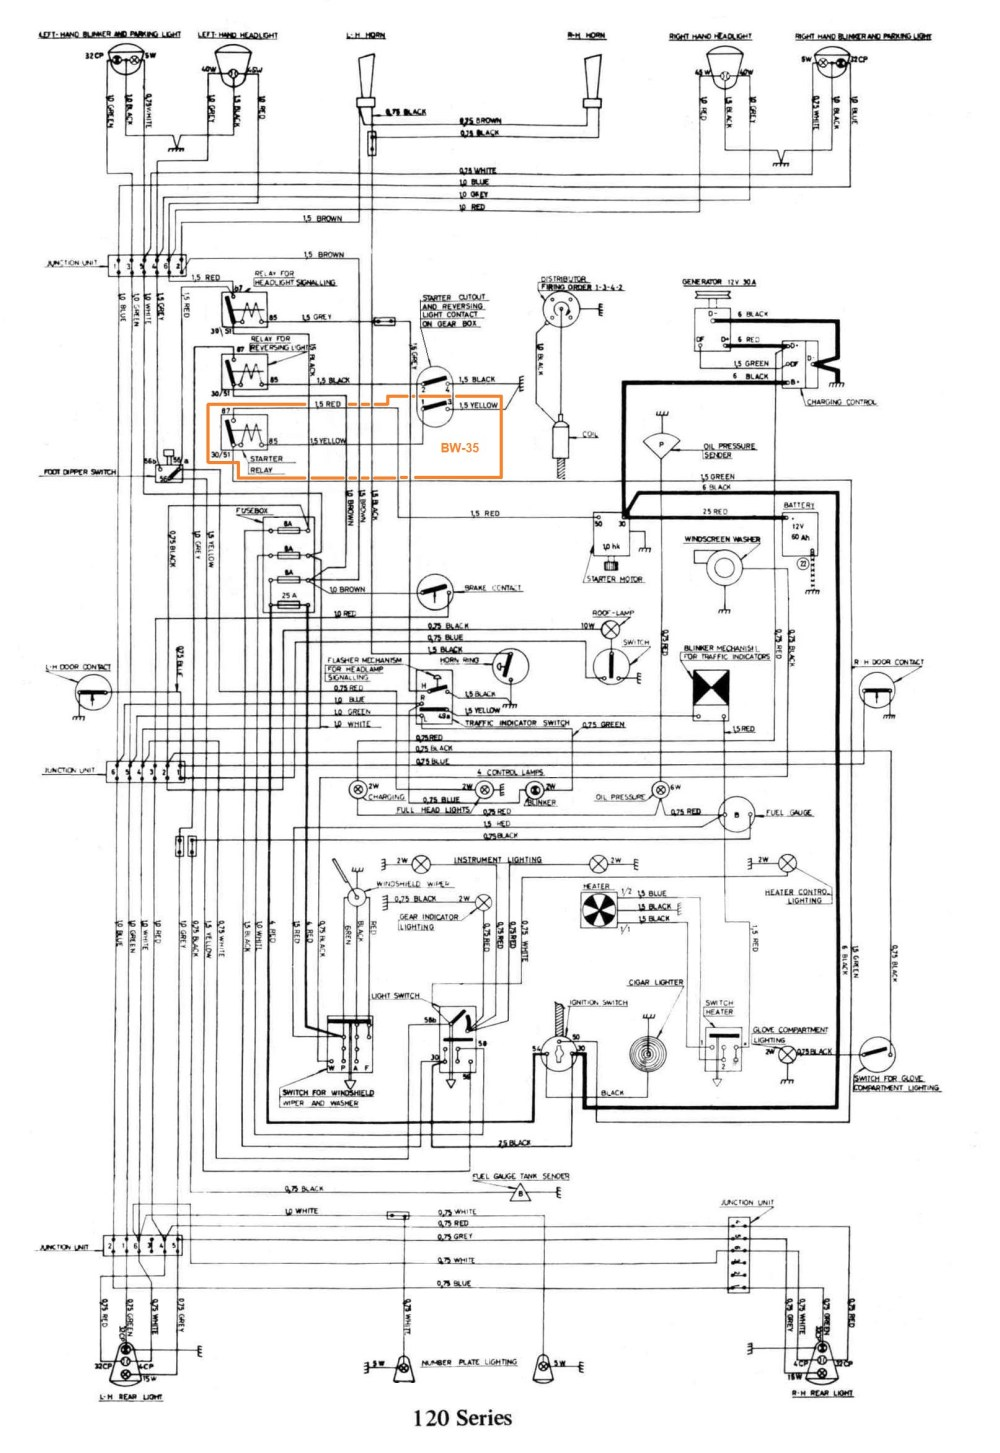 medium resolution of 1995 volvo 940 ac wiring diagram simple wiring schema wiring a 240v circuit 1992 volvo 240 ac wiring